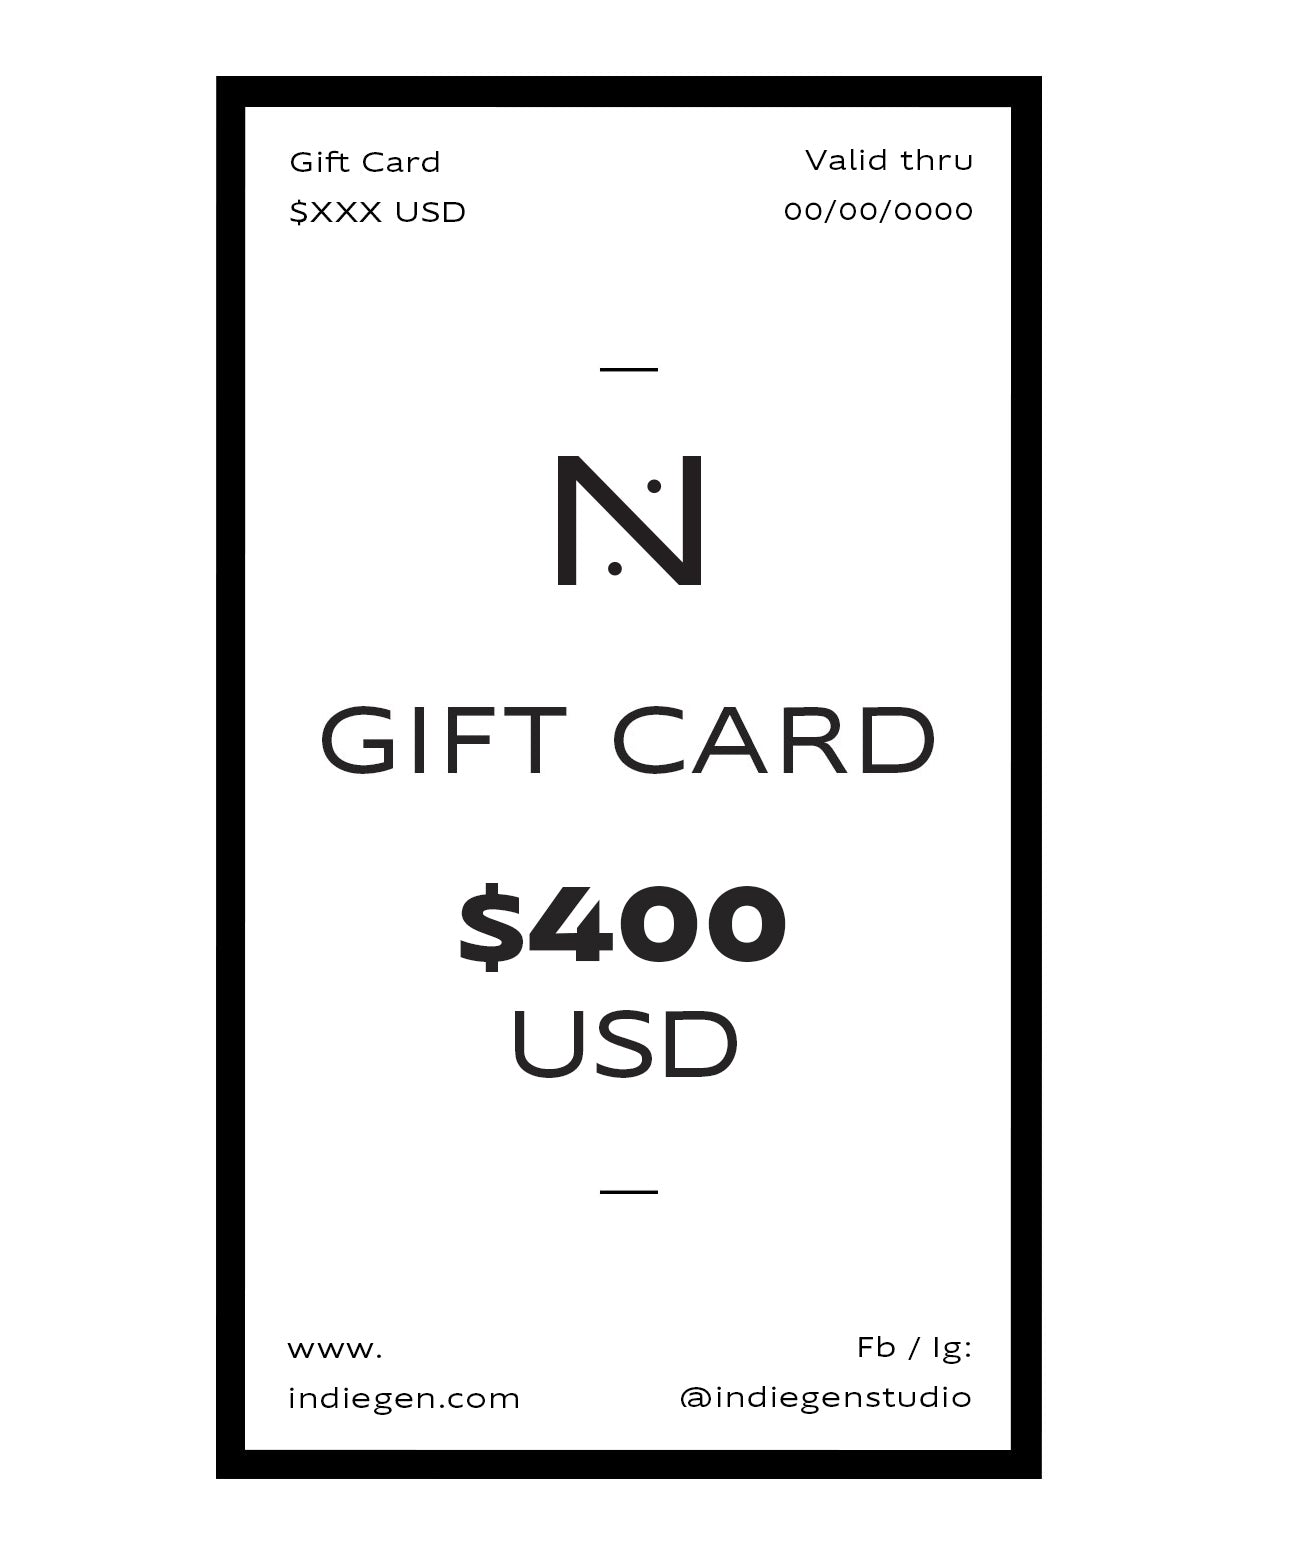 GIFT CARD $400 USD